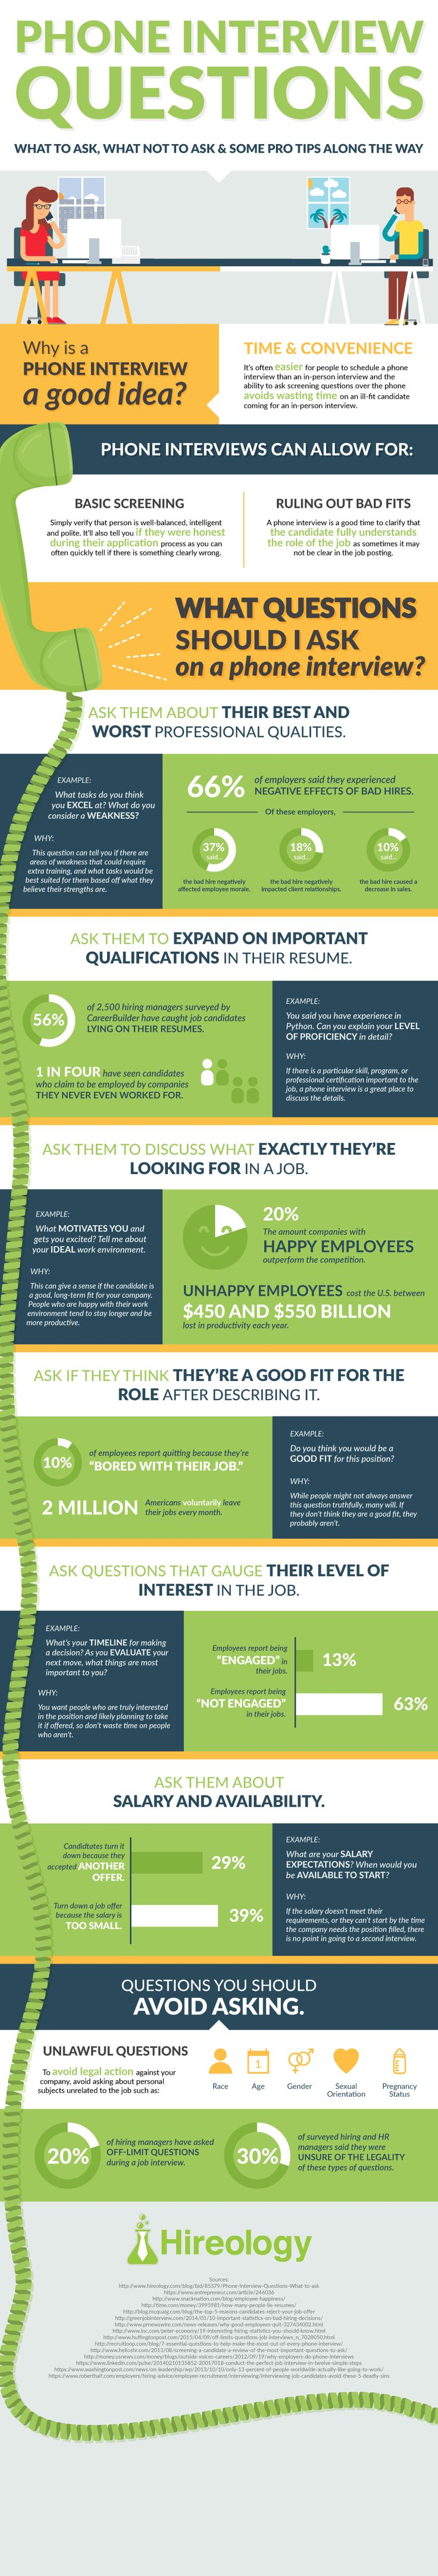 best ideas about leadership interview questions the questions you should and definitely shouldn t ask during a phone interview infographic